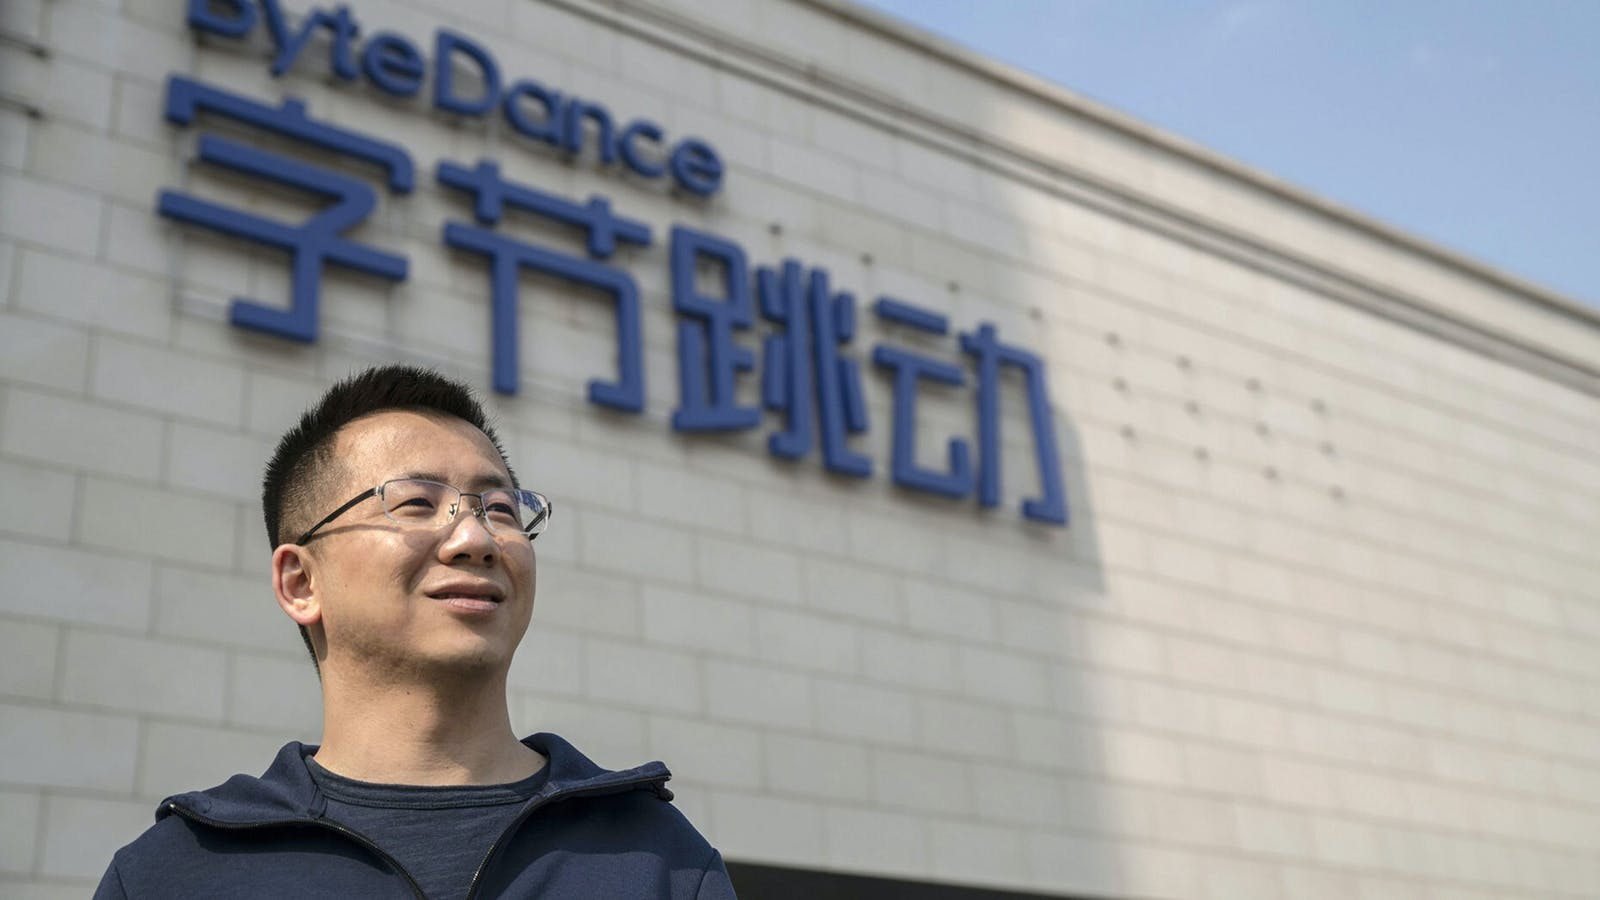 ByteDance's founder Zhang Yiming, who is stepping down as CEO this later year. Photo by Bloomberg.